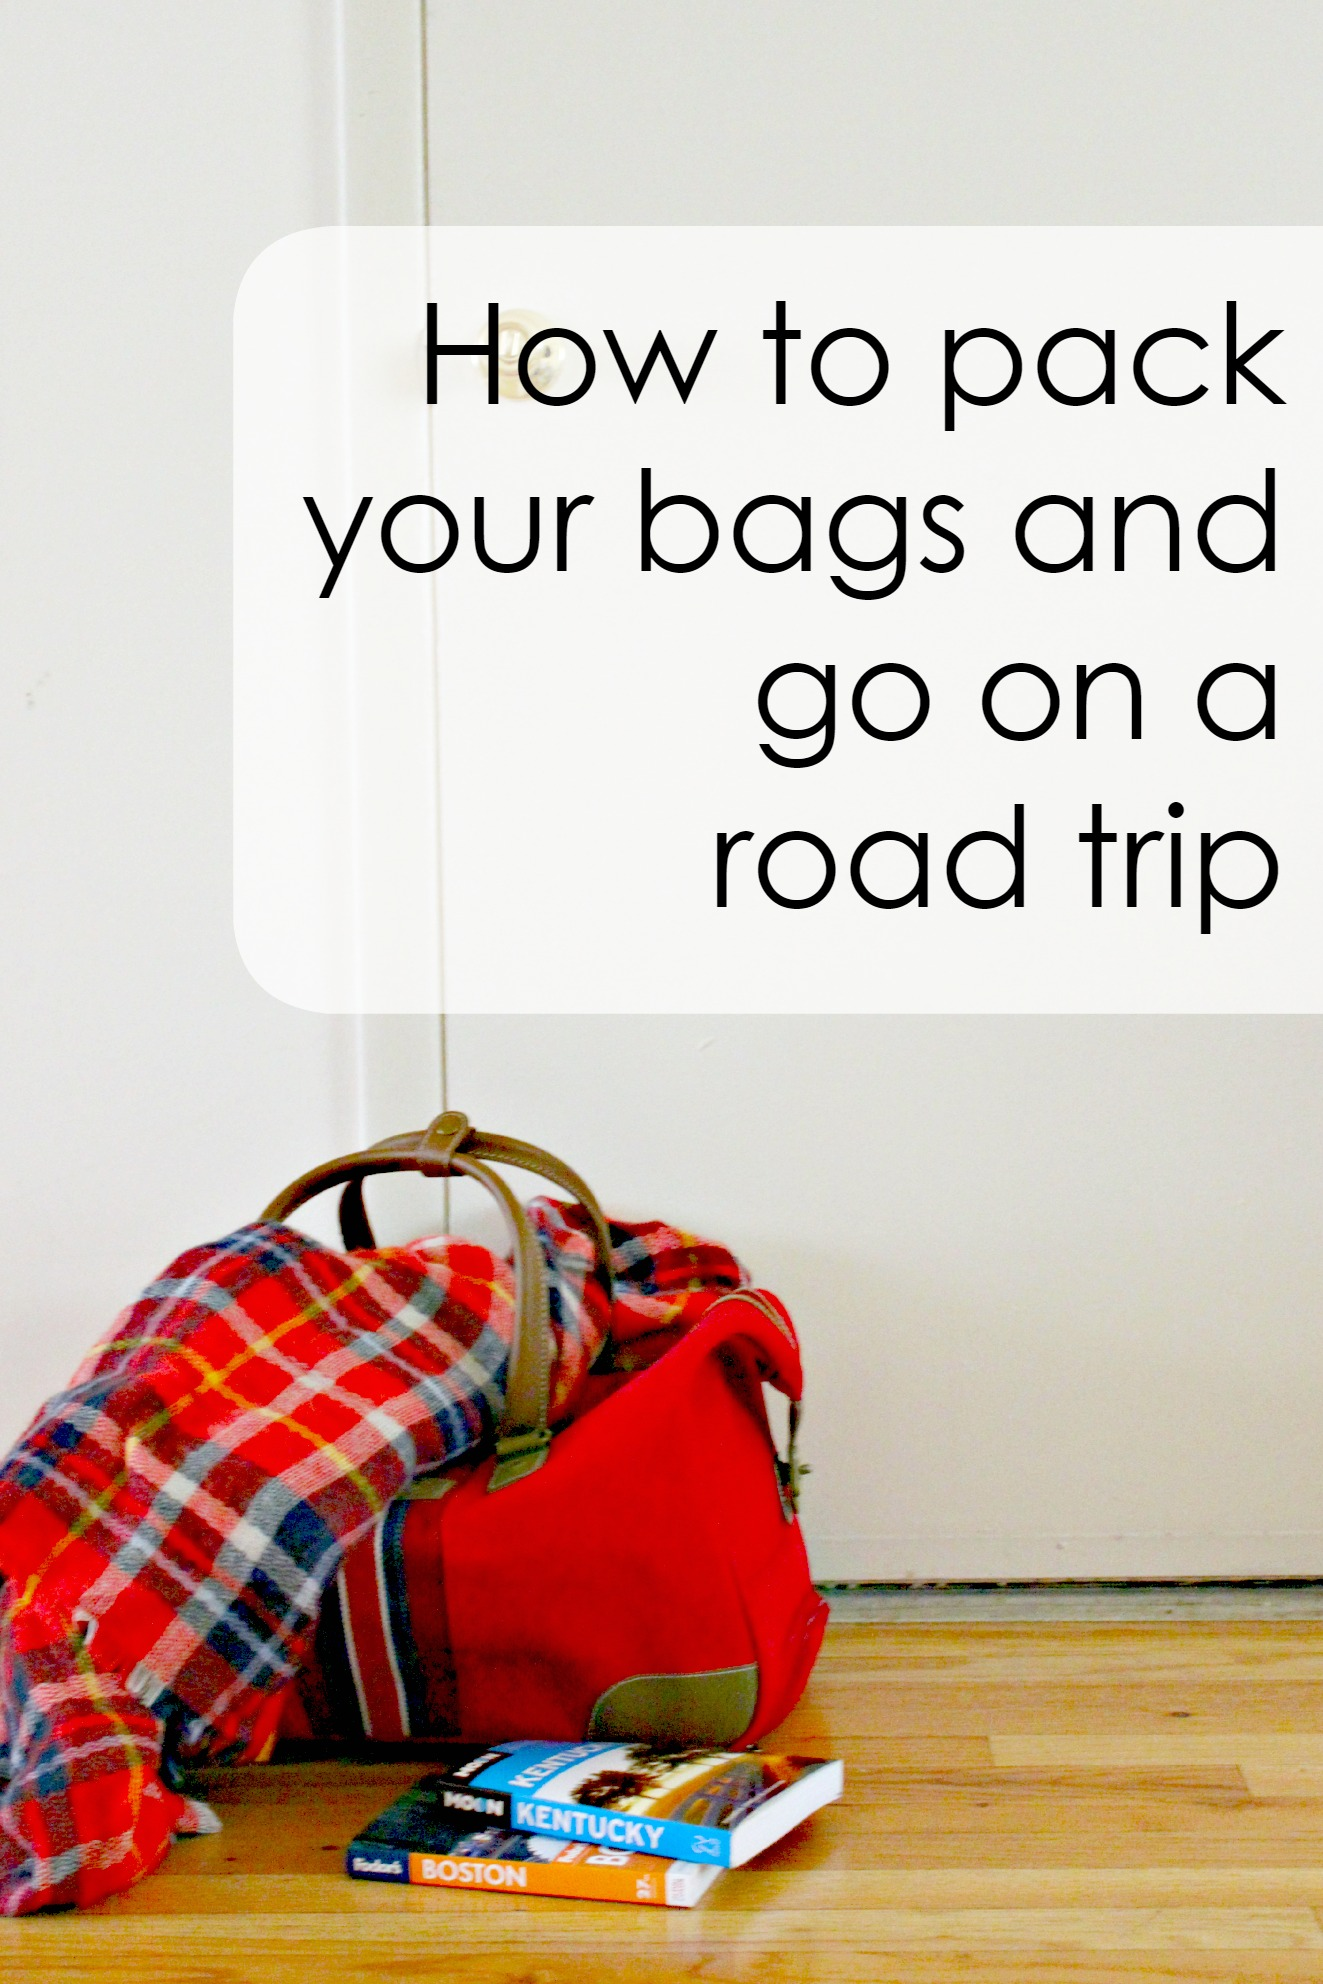 How to Pack Your Bags and Go on a Road Trip